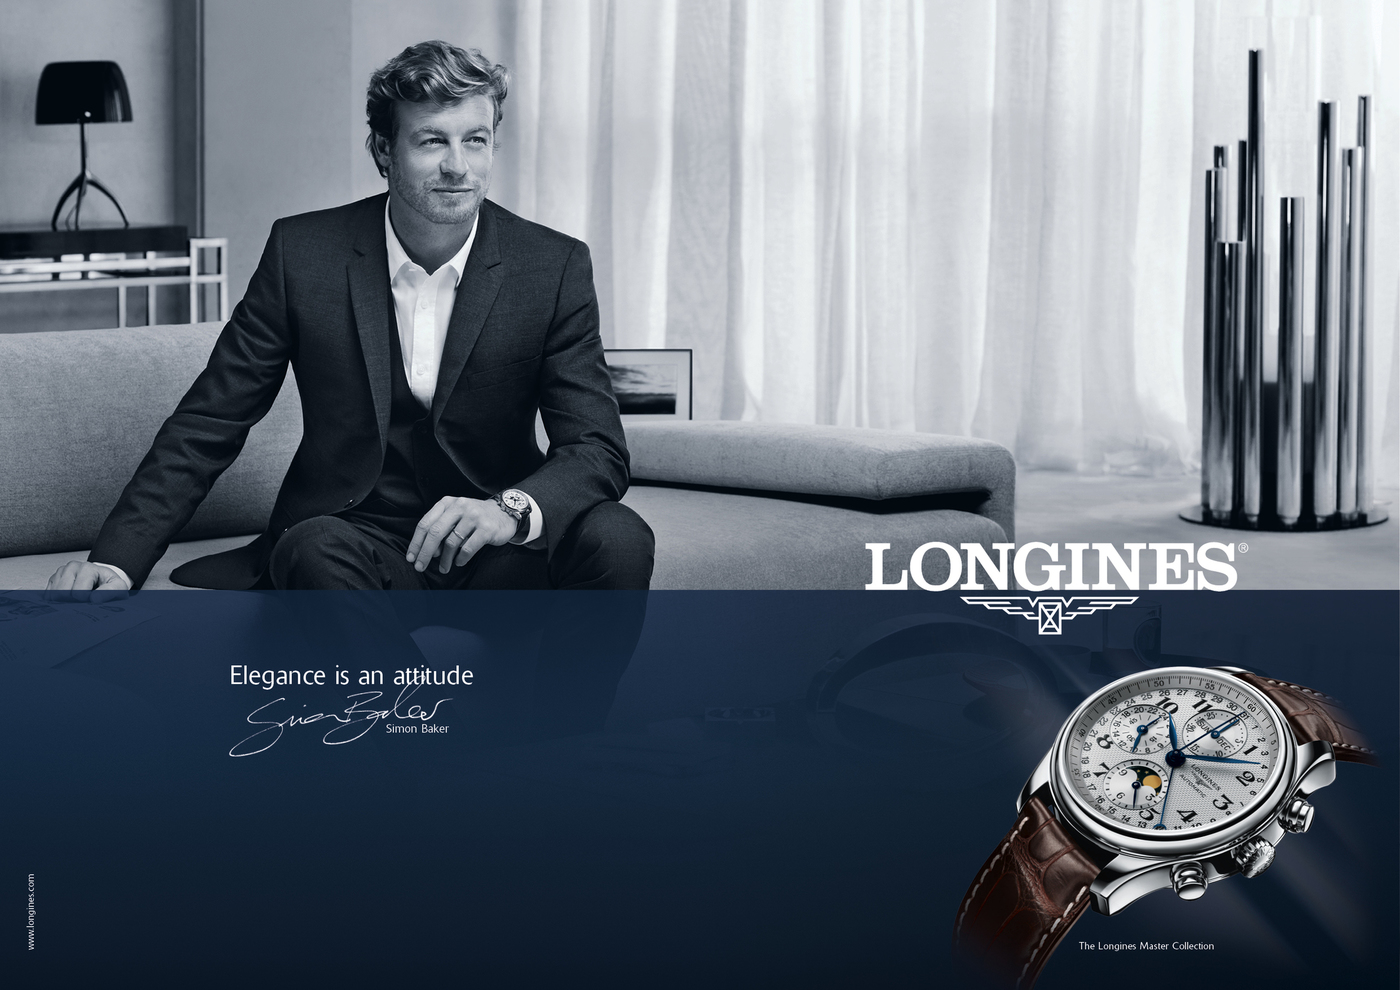 Longines Corporate Event: Simon Baker is the epitome of elegance in the new Longines advertising campaign 6